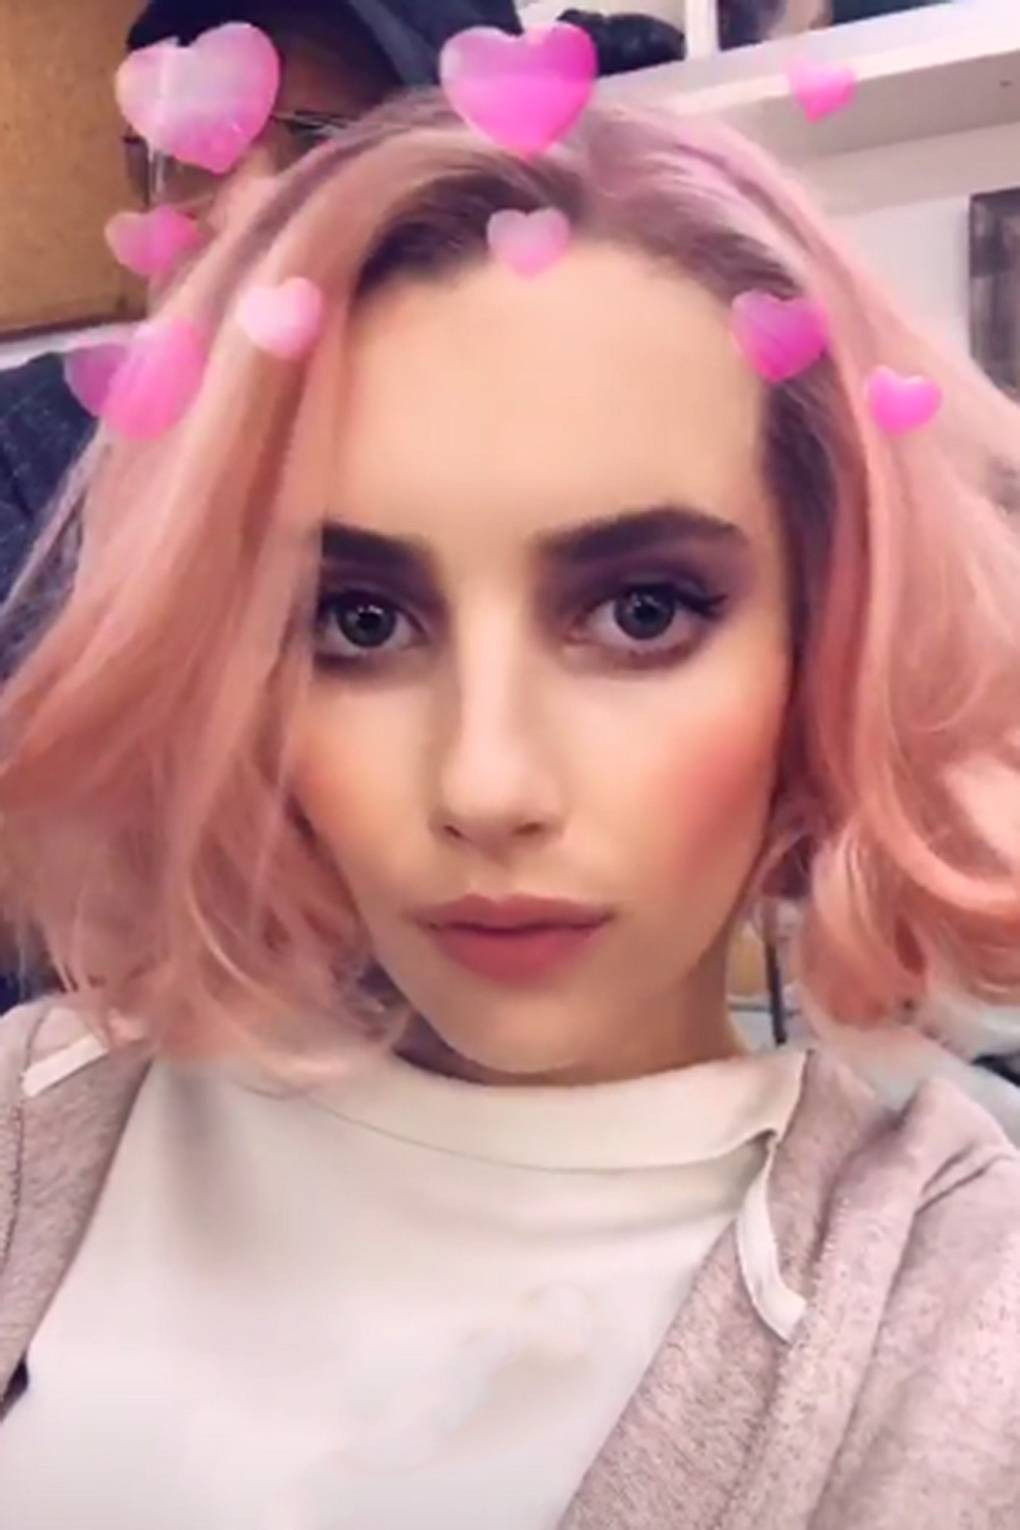 Watch Elsa Hosks Newly Dyed Rose-Gold Hair Is Everything and More video